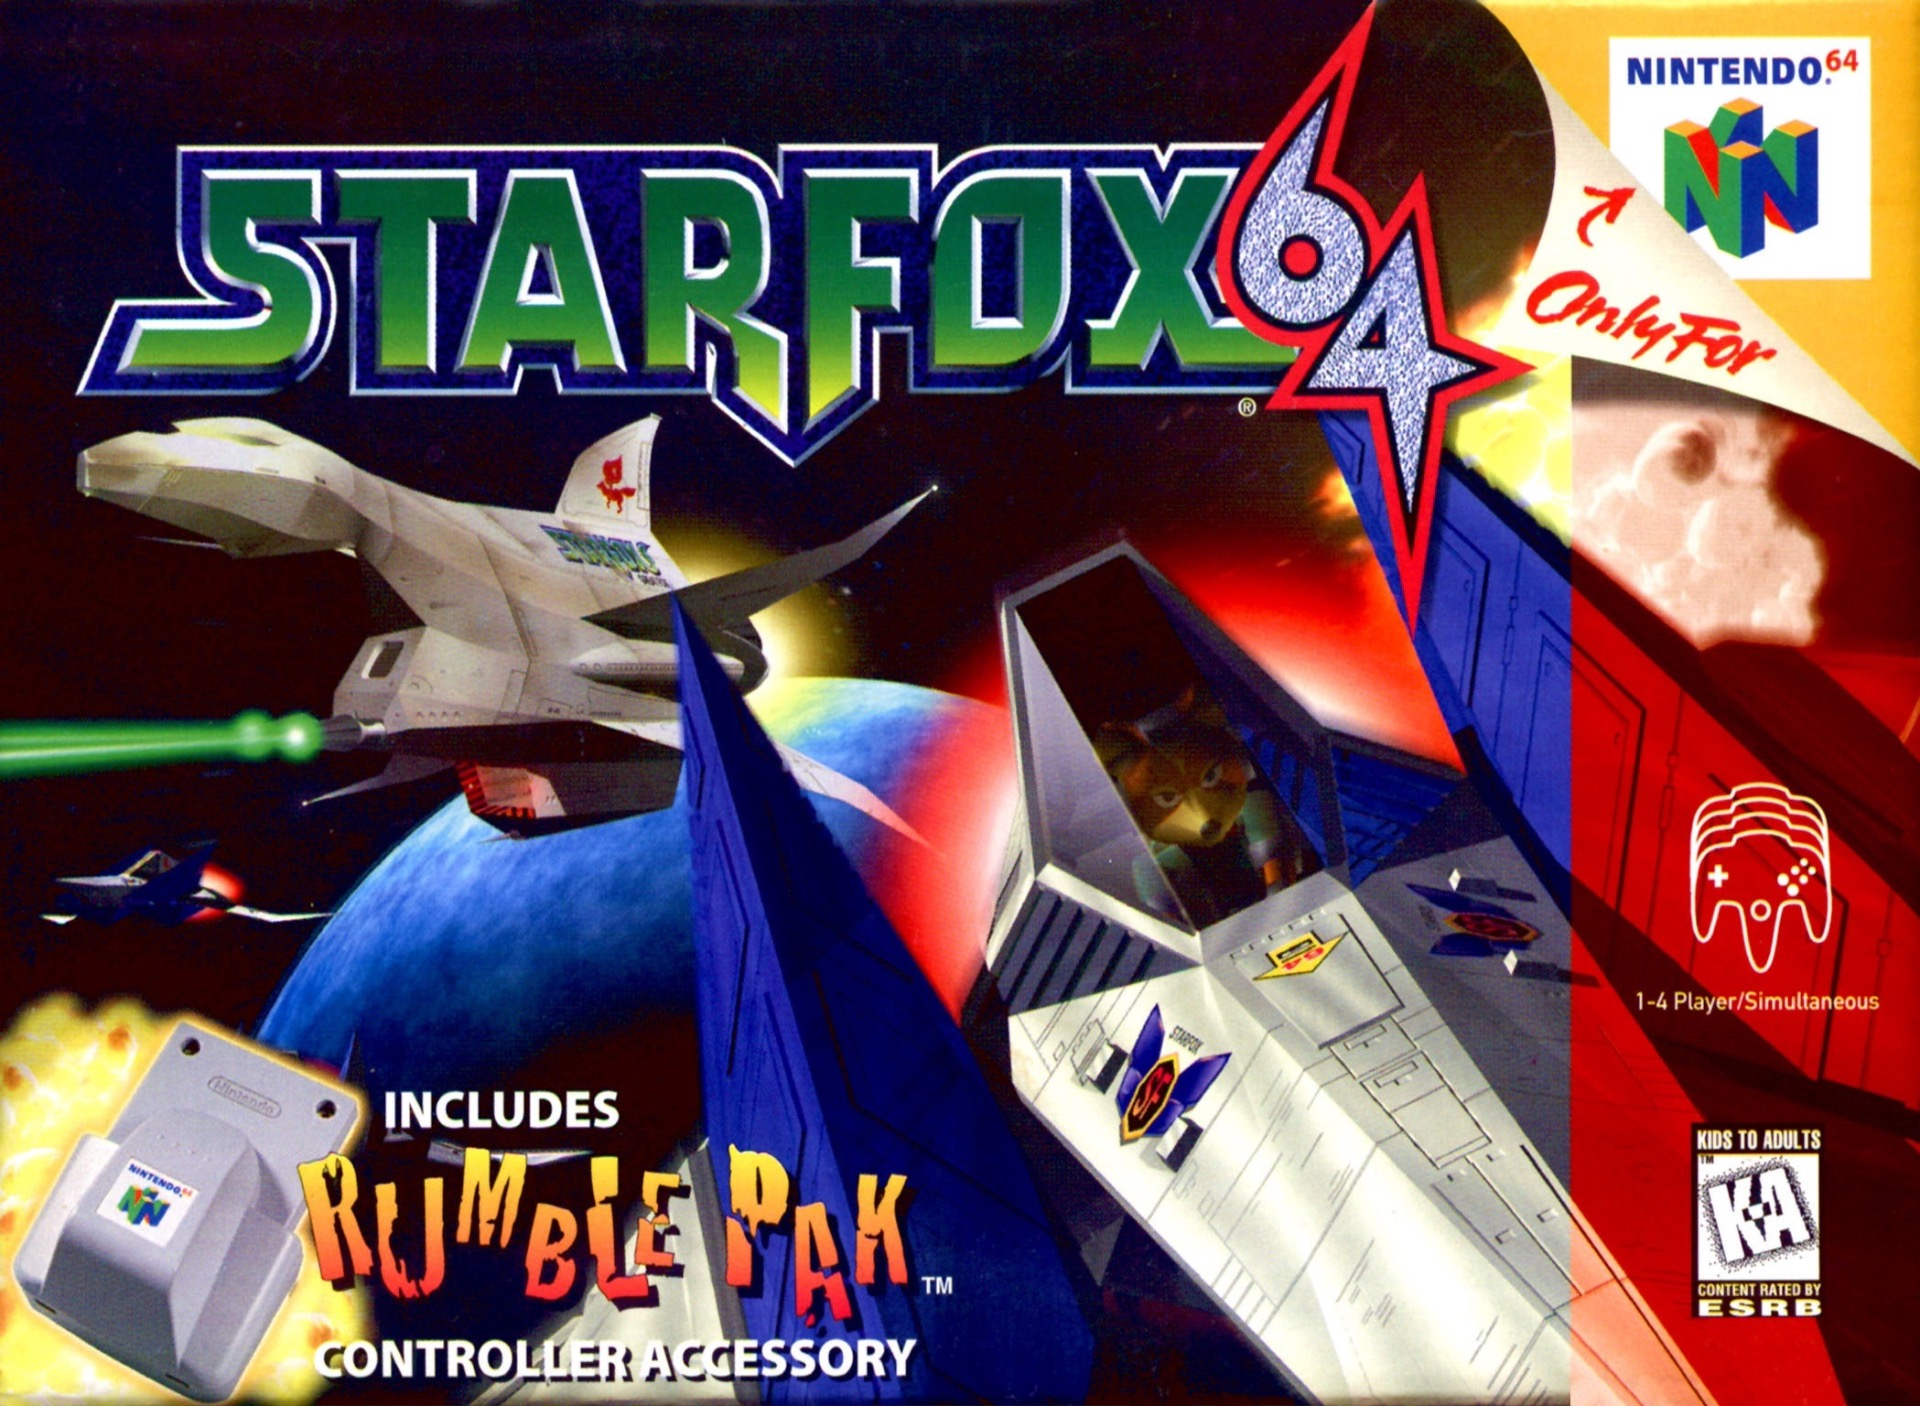 Star Fox 64 on the Nintendo 64.